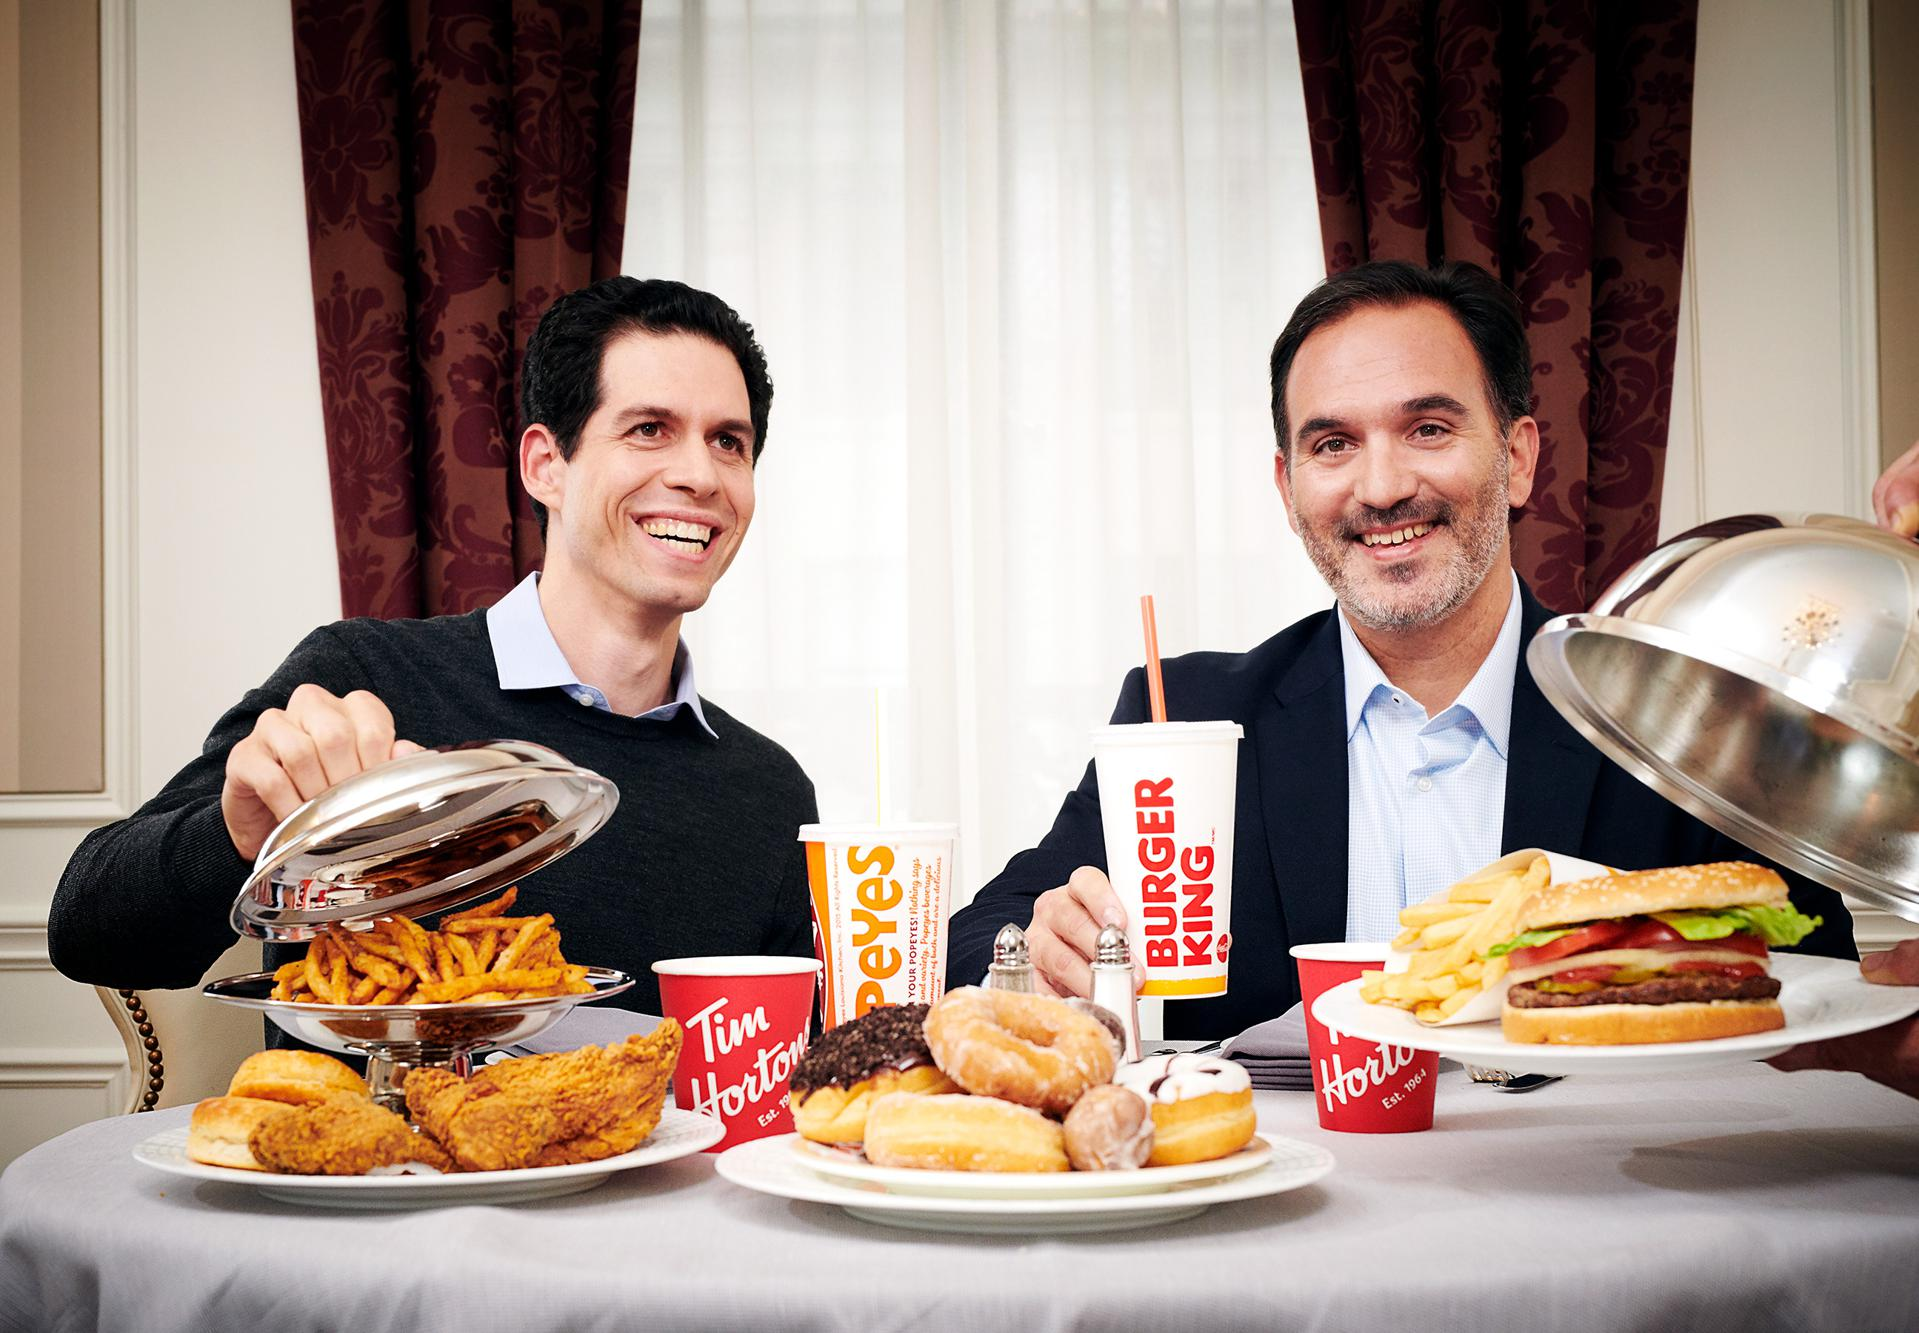 Photo of Daniel Schwartz and Jose Cil seated at a table with fast food.